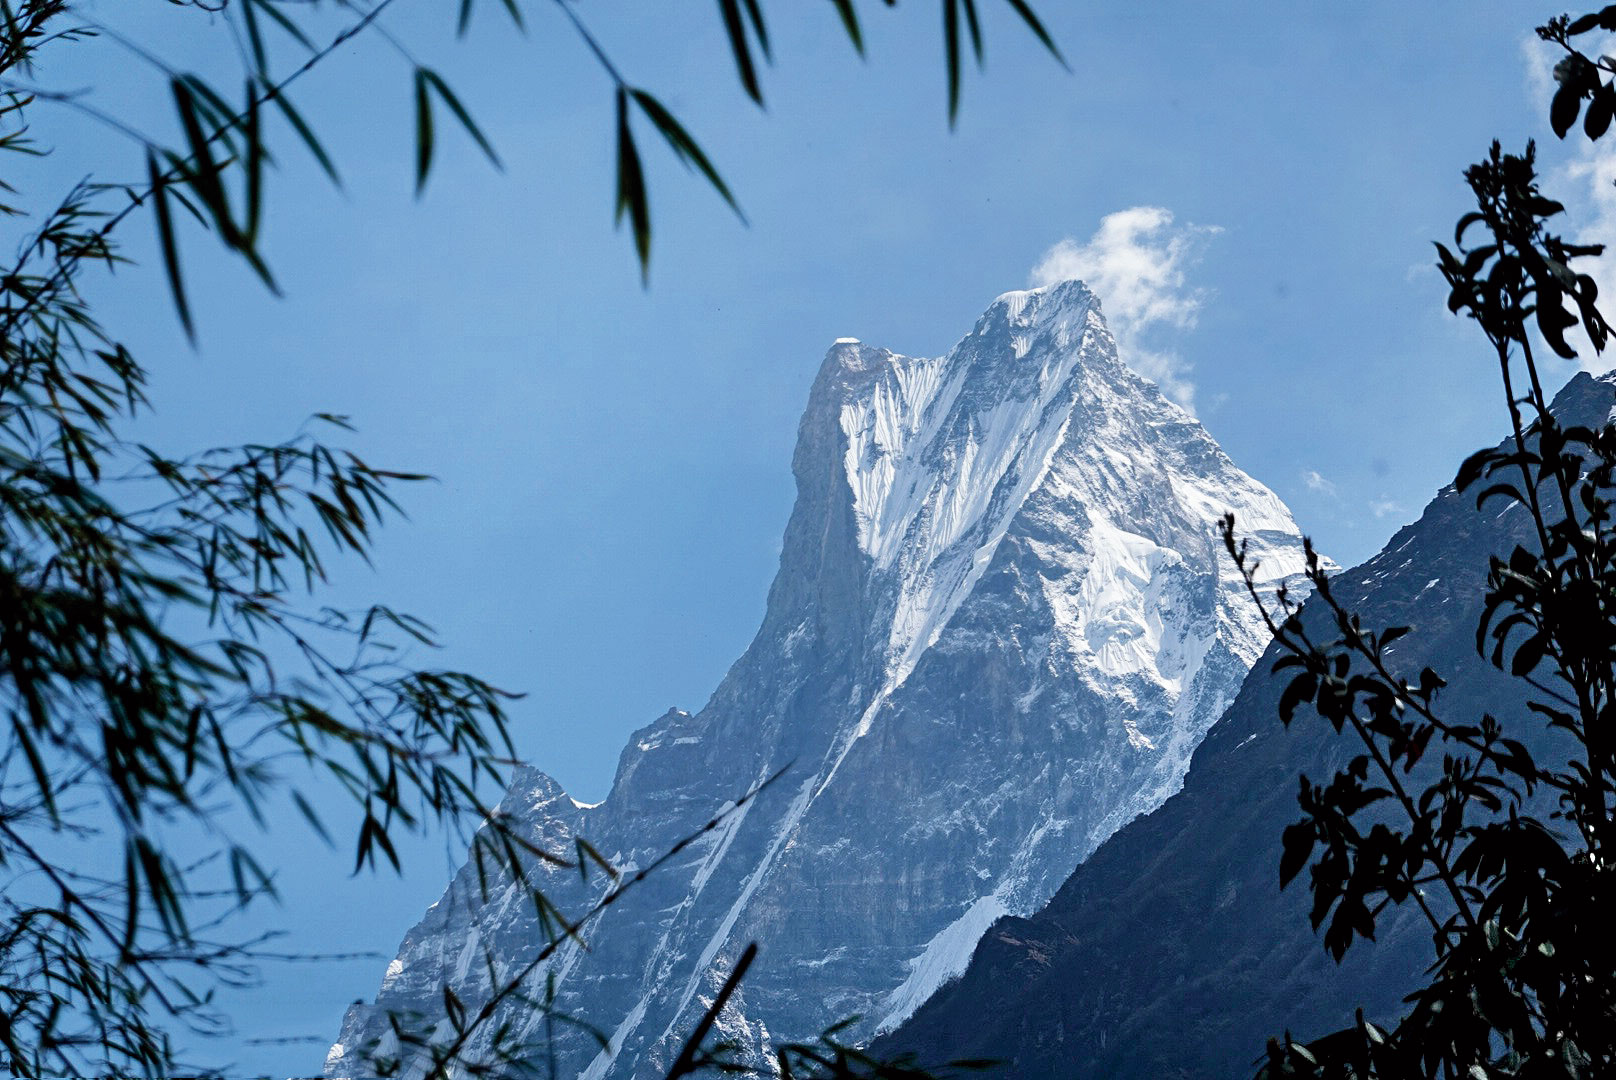 Machhapuchchhre, or the Fishtail Mountain, looks even more imposing up close